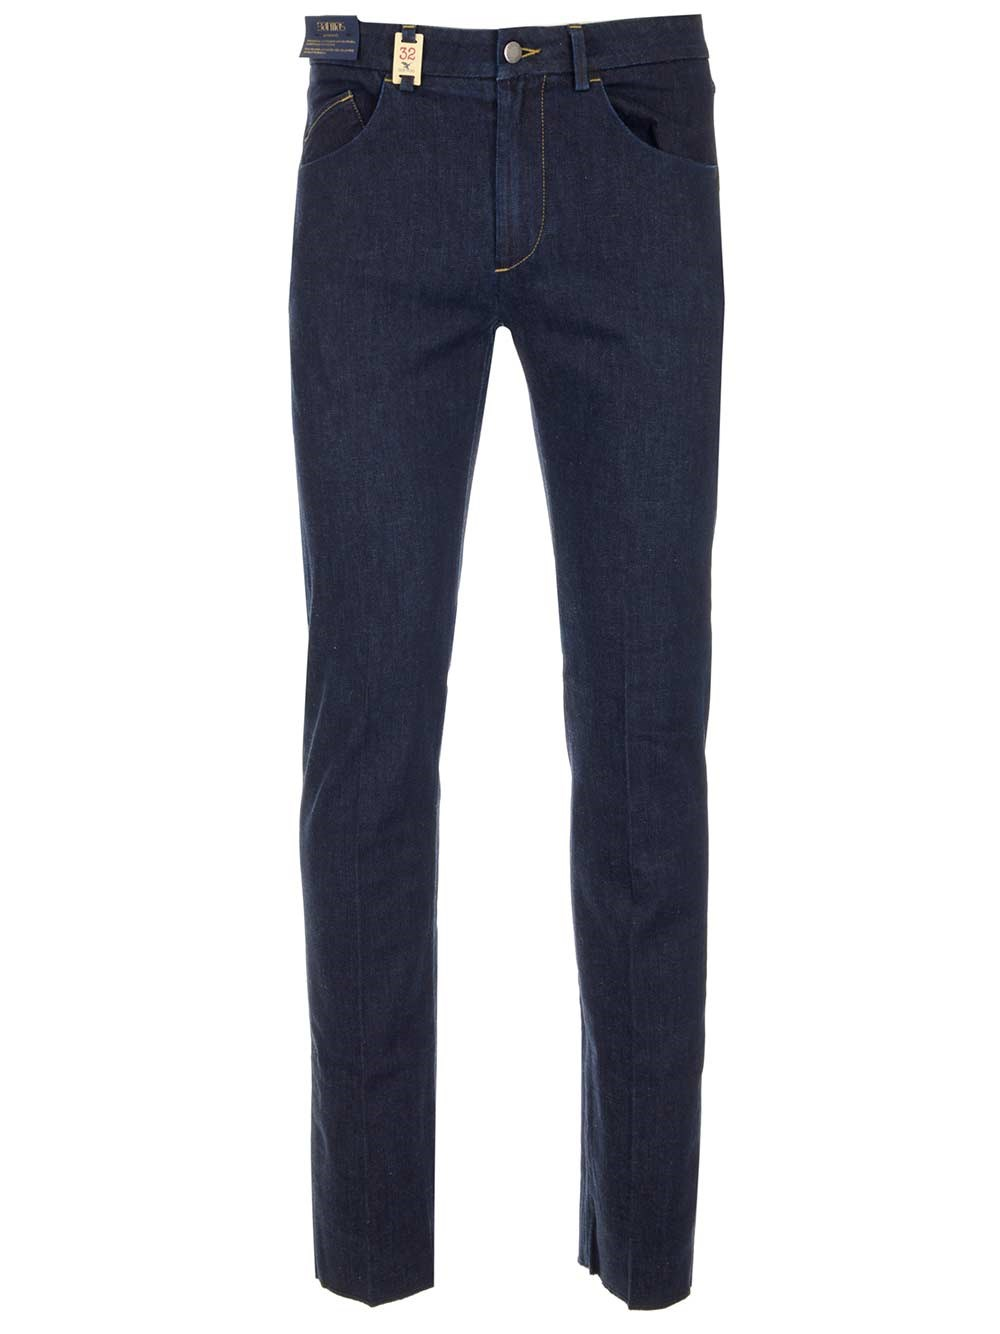 BARMAS Tailored Jeans In Cotton And Cashmere